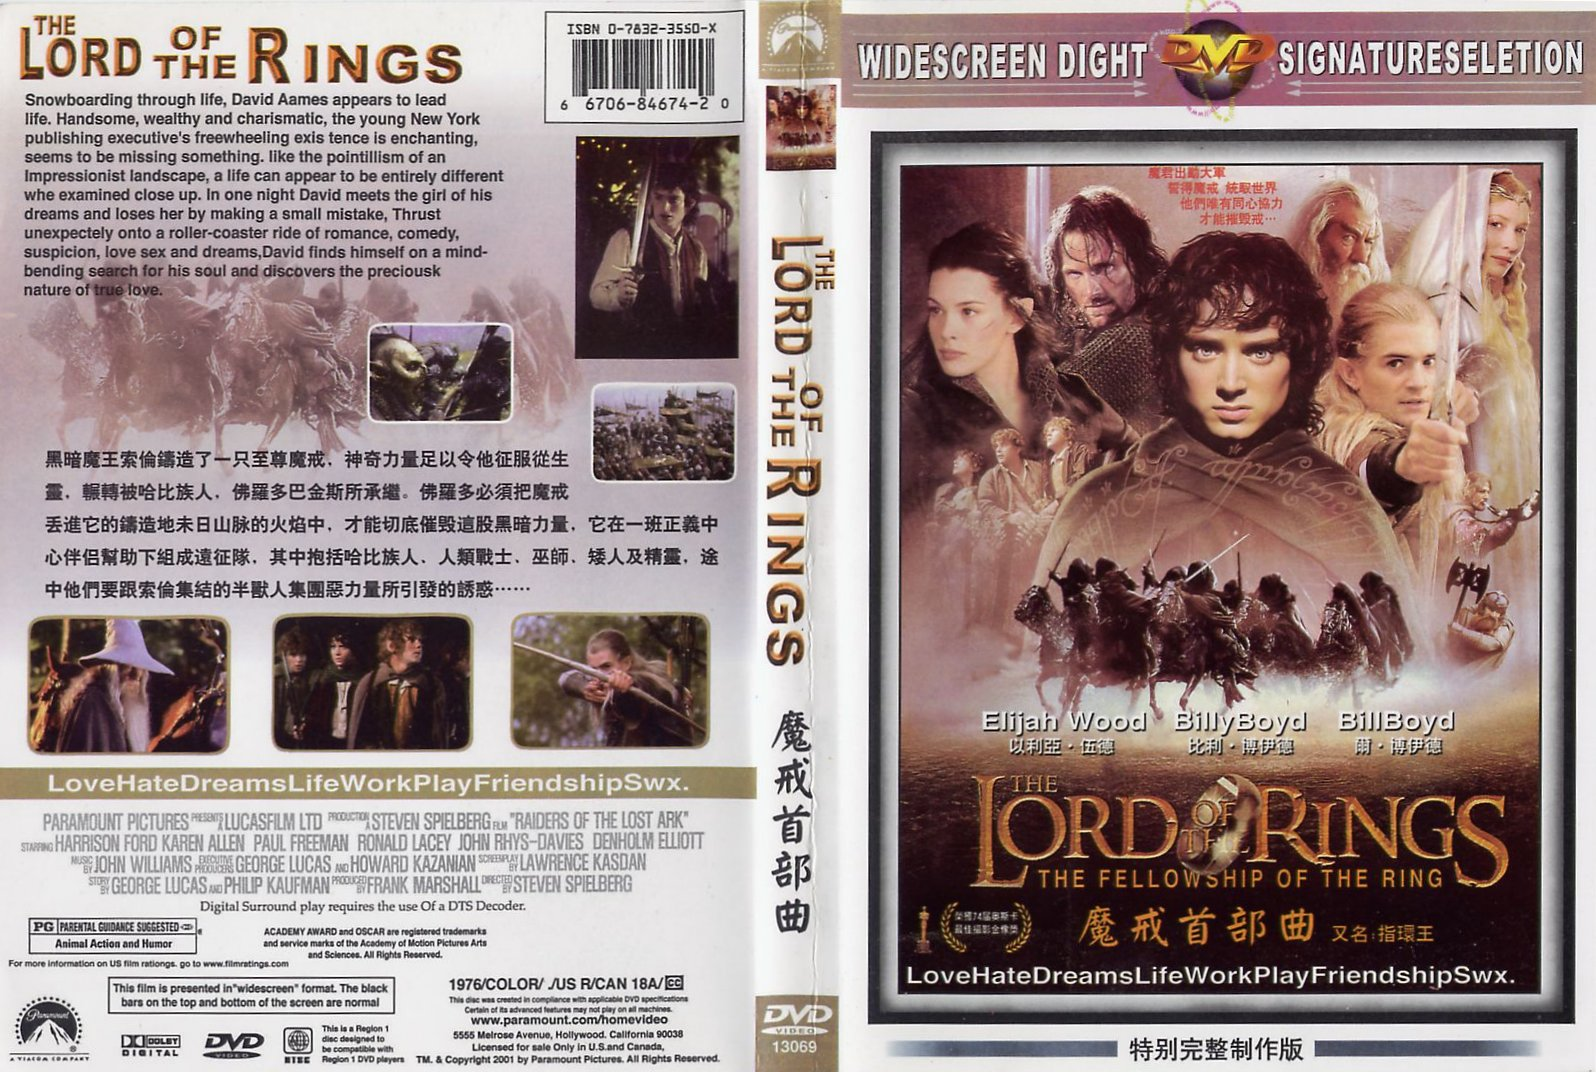 Lord of the Rings, Chinese